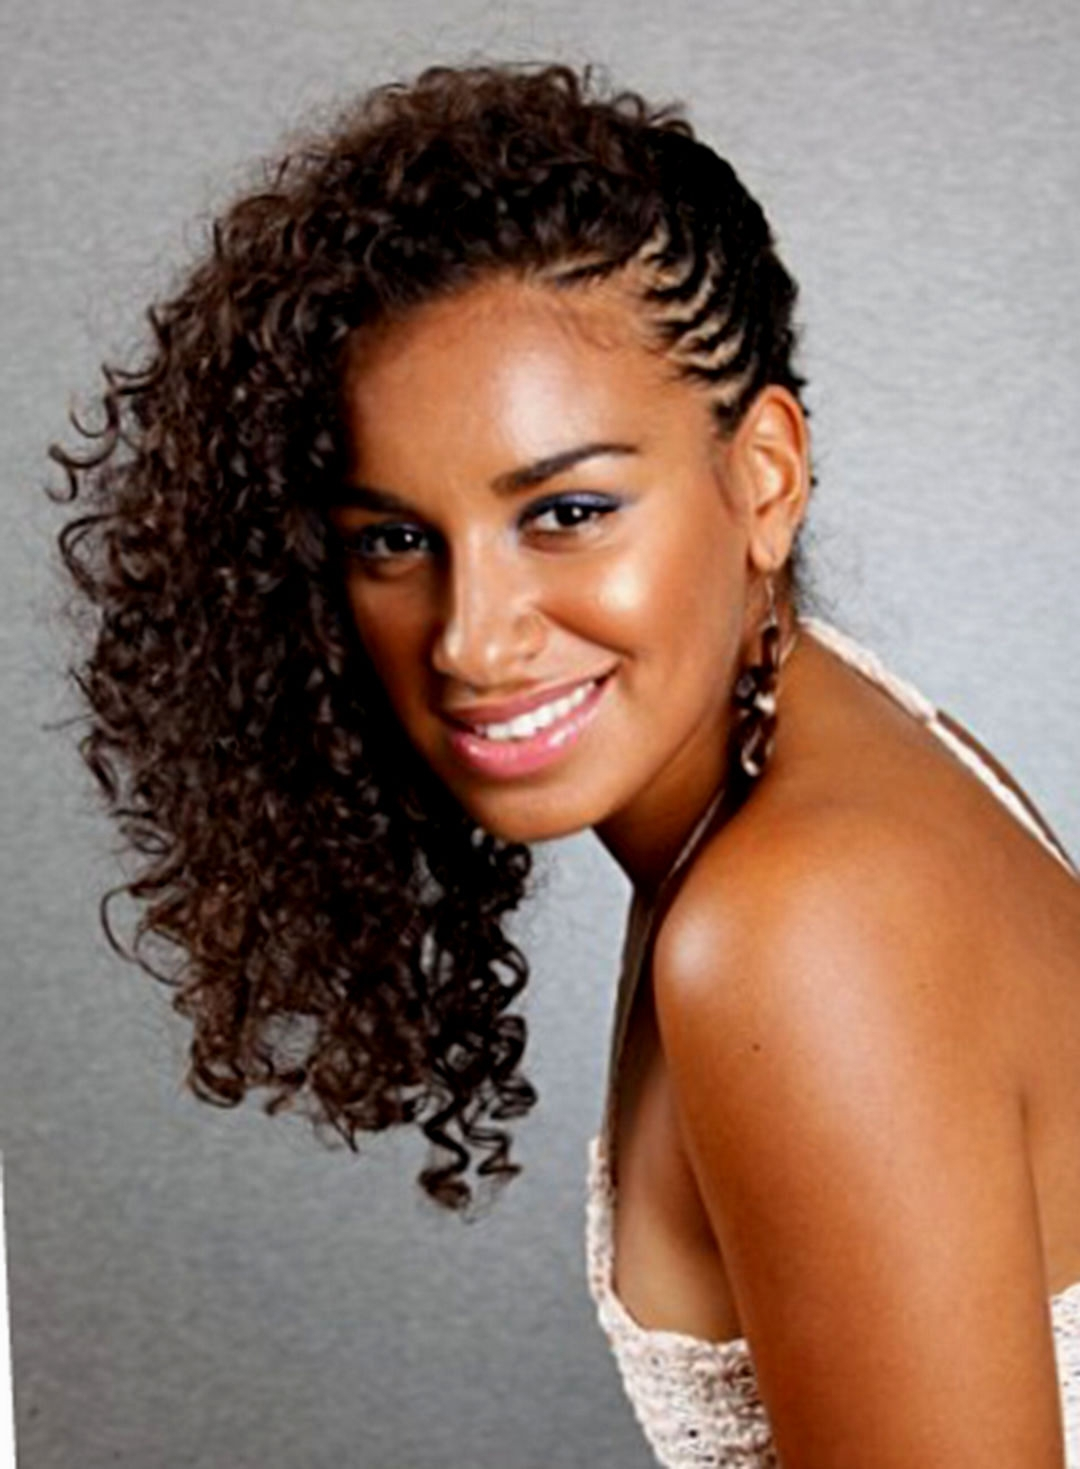 Current Braided Hairstyles For Curly Hair With Regard To Braided Hairstyles Naturally Curly Hair Simple Of Curly Braided (View 5 of 15)